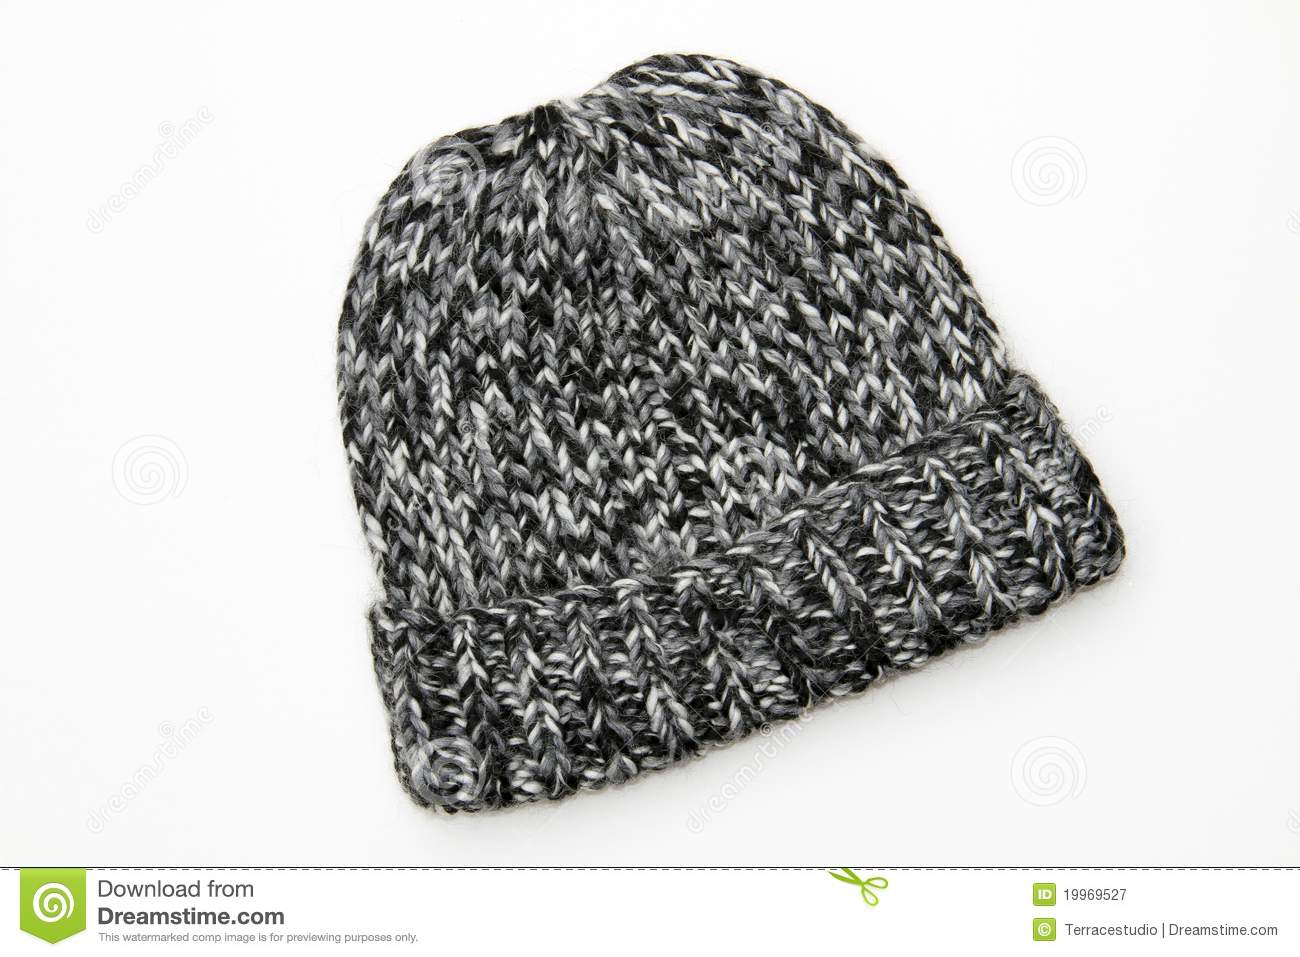 0ef9f72c0f9 Winter Knit Wool Black Gray White Hat Beanie Stock Image - Image of ...